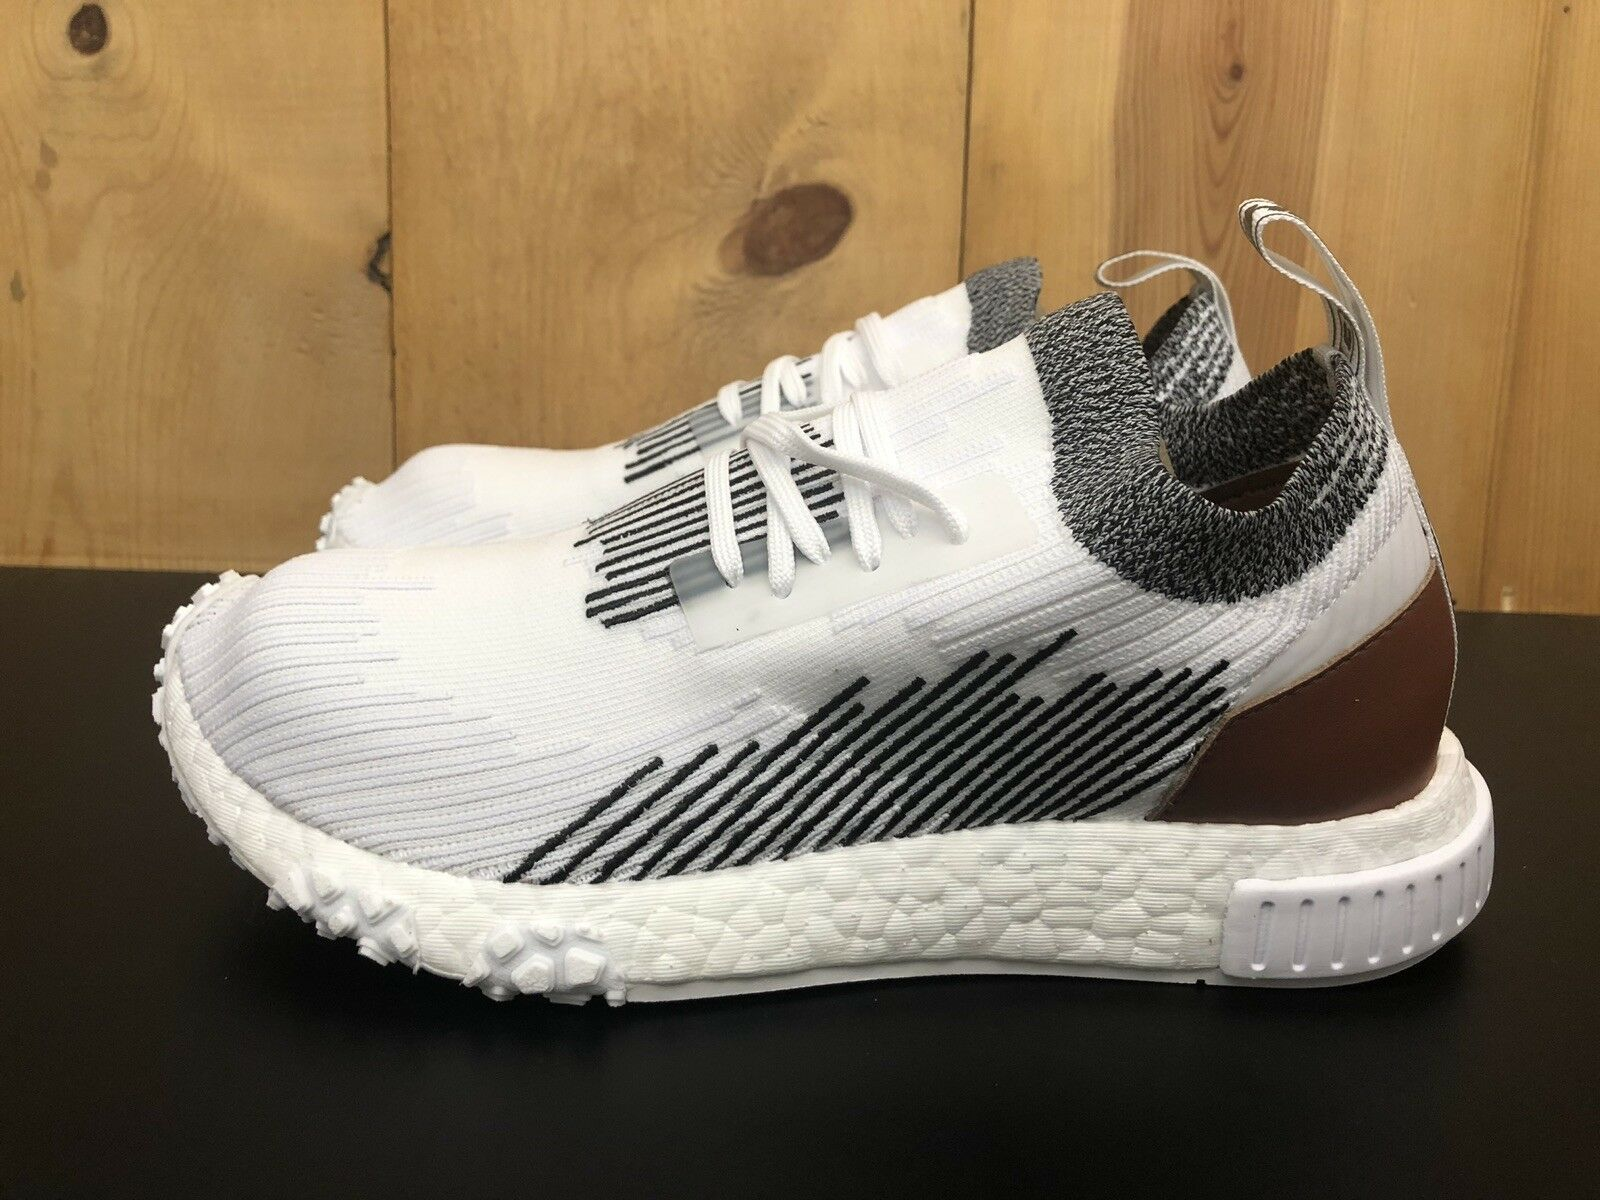 quality design 1106a a6363 ADIDAS NMD RACER MONACO PRIMEKNIT AC8233 Running shoes Mens 6 or womens 7.5